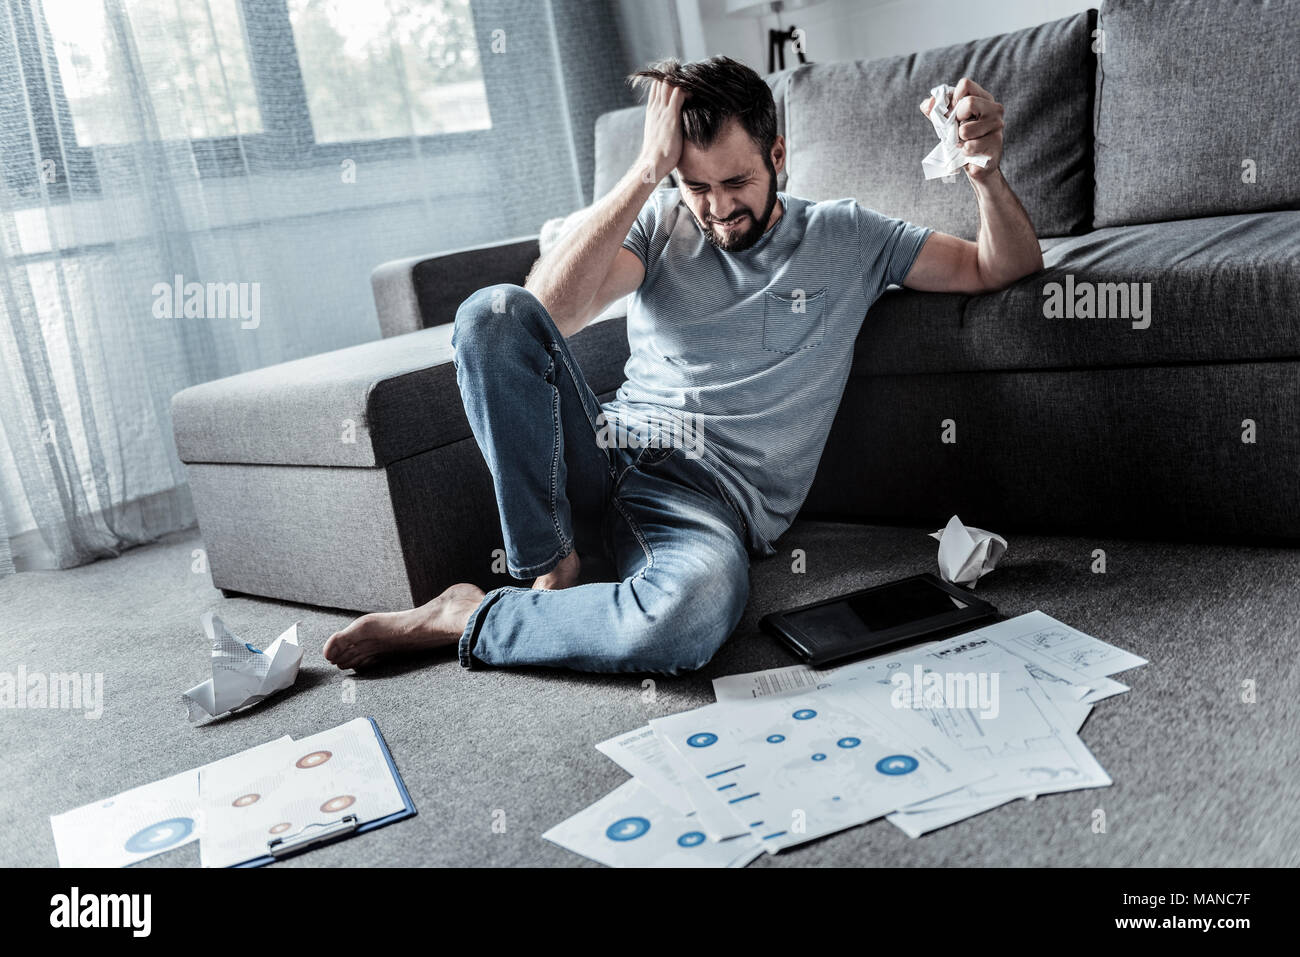 Depressed angry man not coping with his work - Stock Image